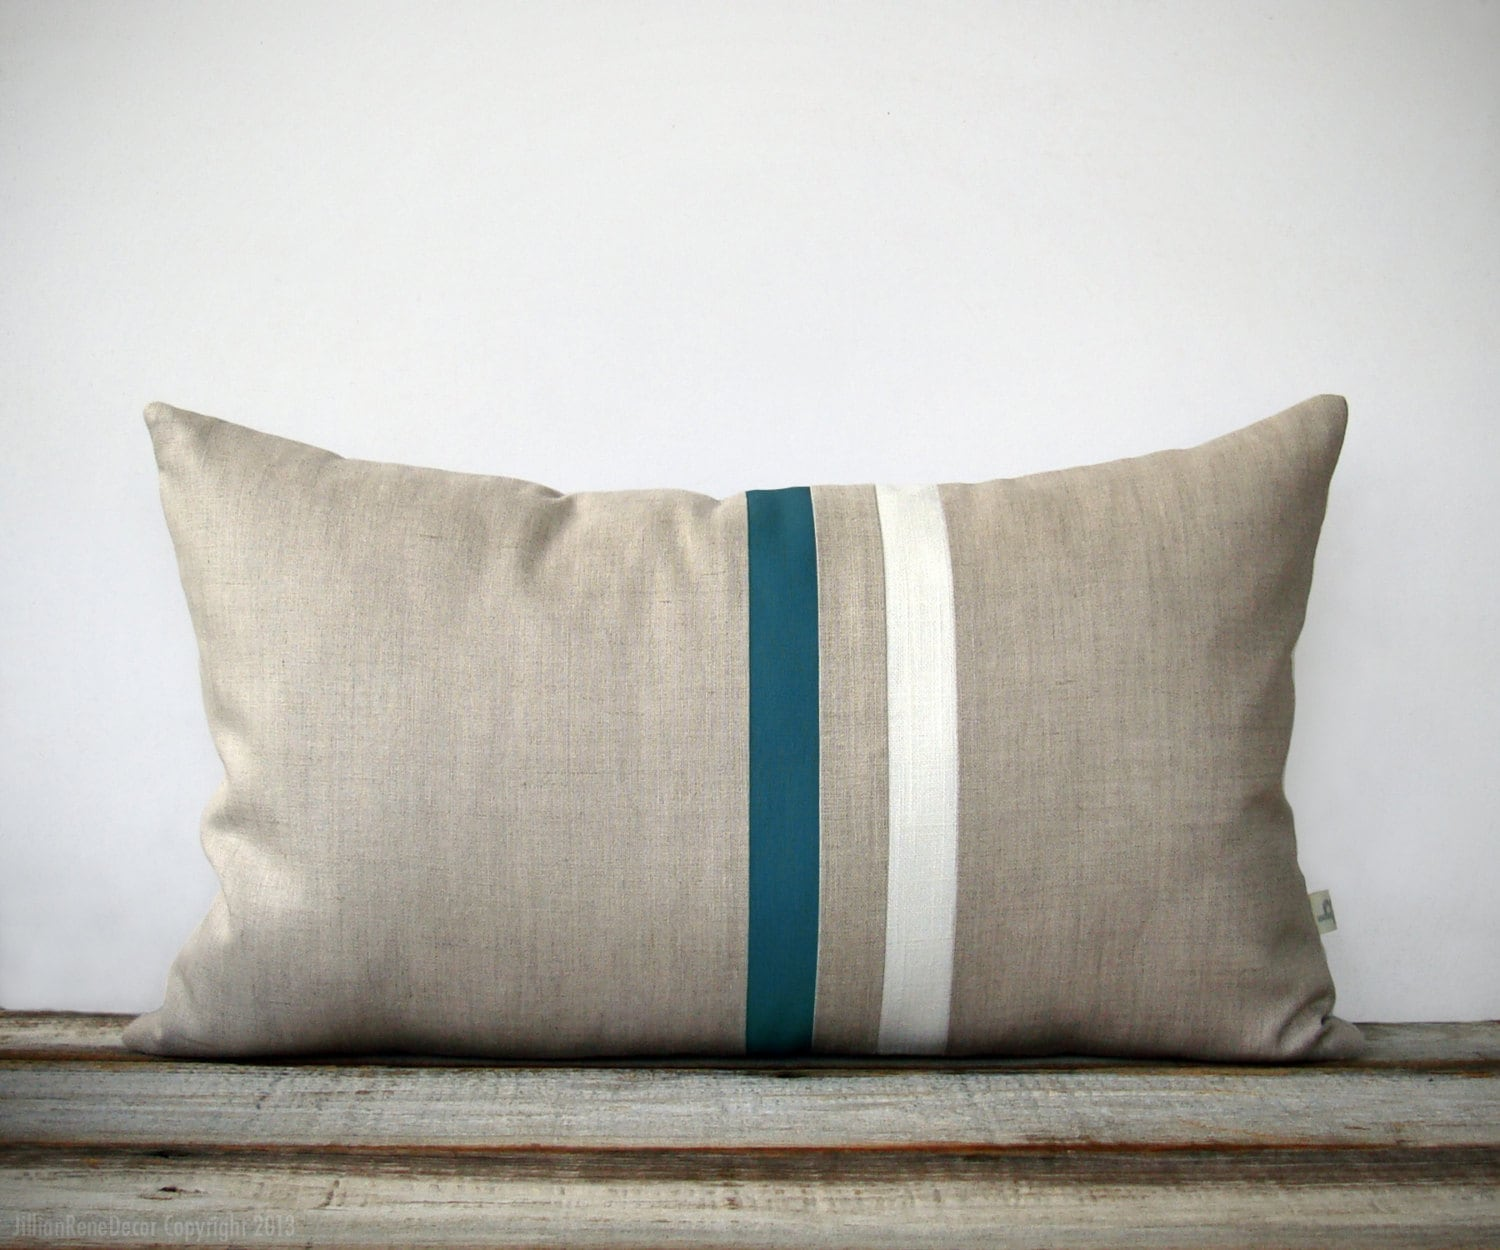 cream colored sofa pillows small 2 seater laura ashley teal and striped lumbar pillow 12x20 modern home decor